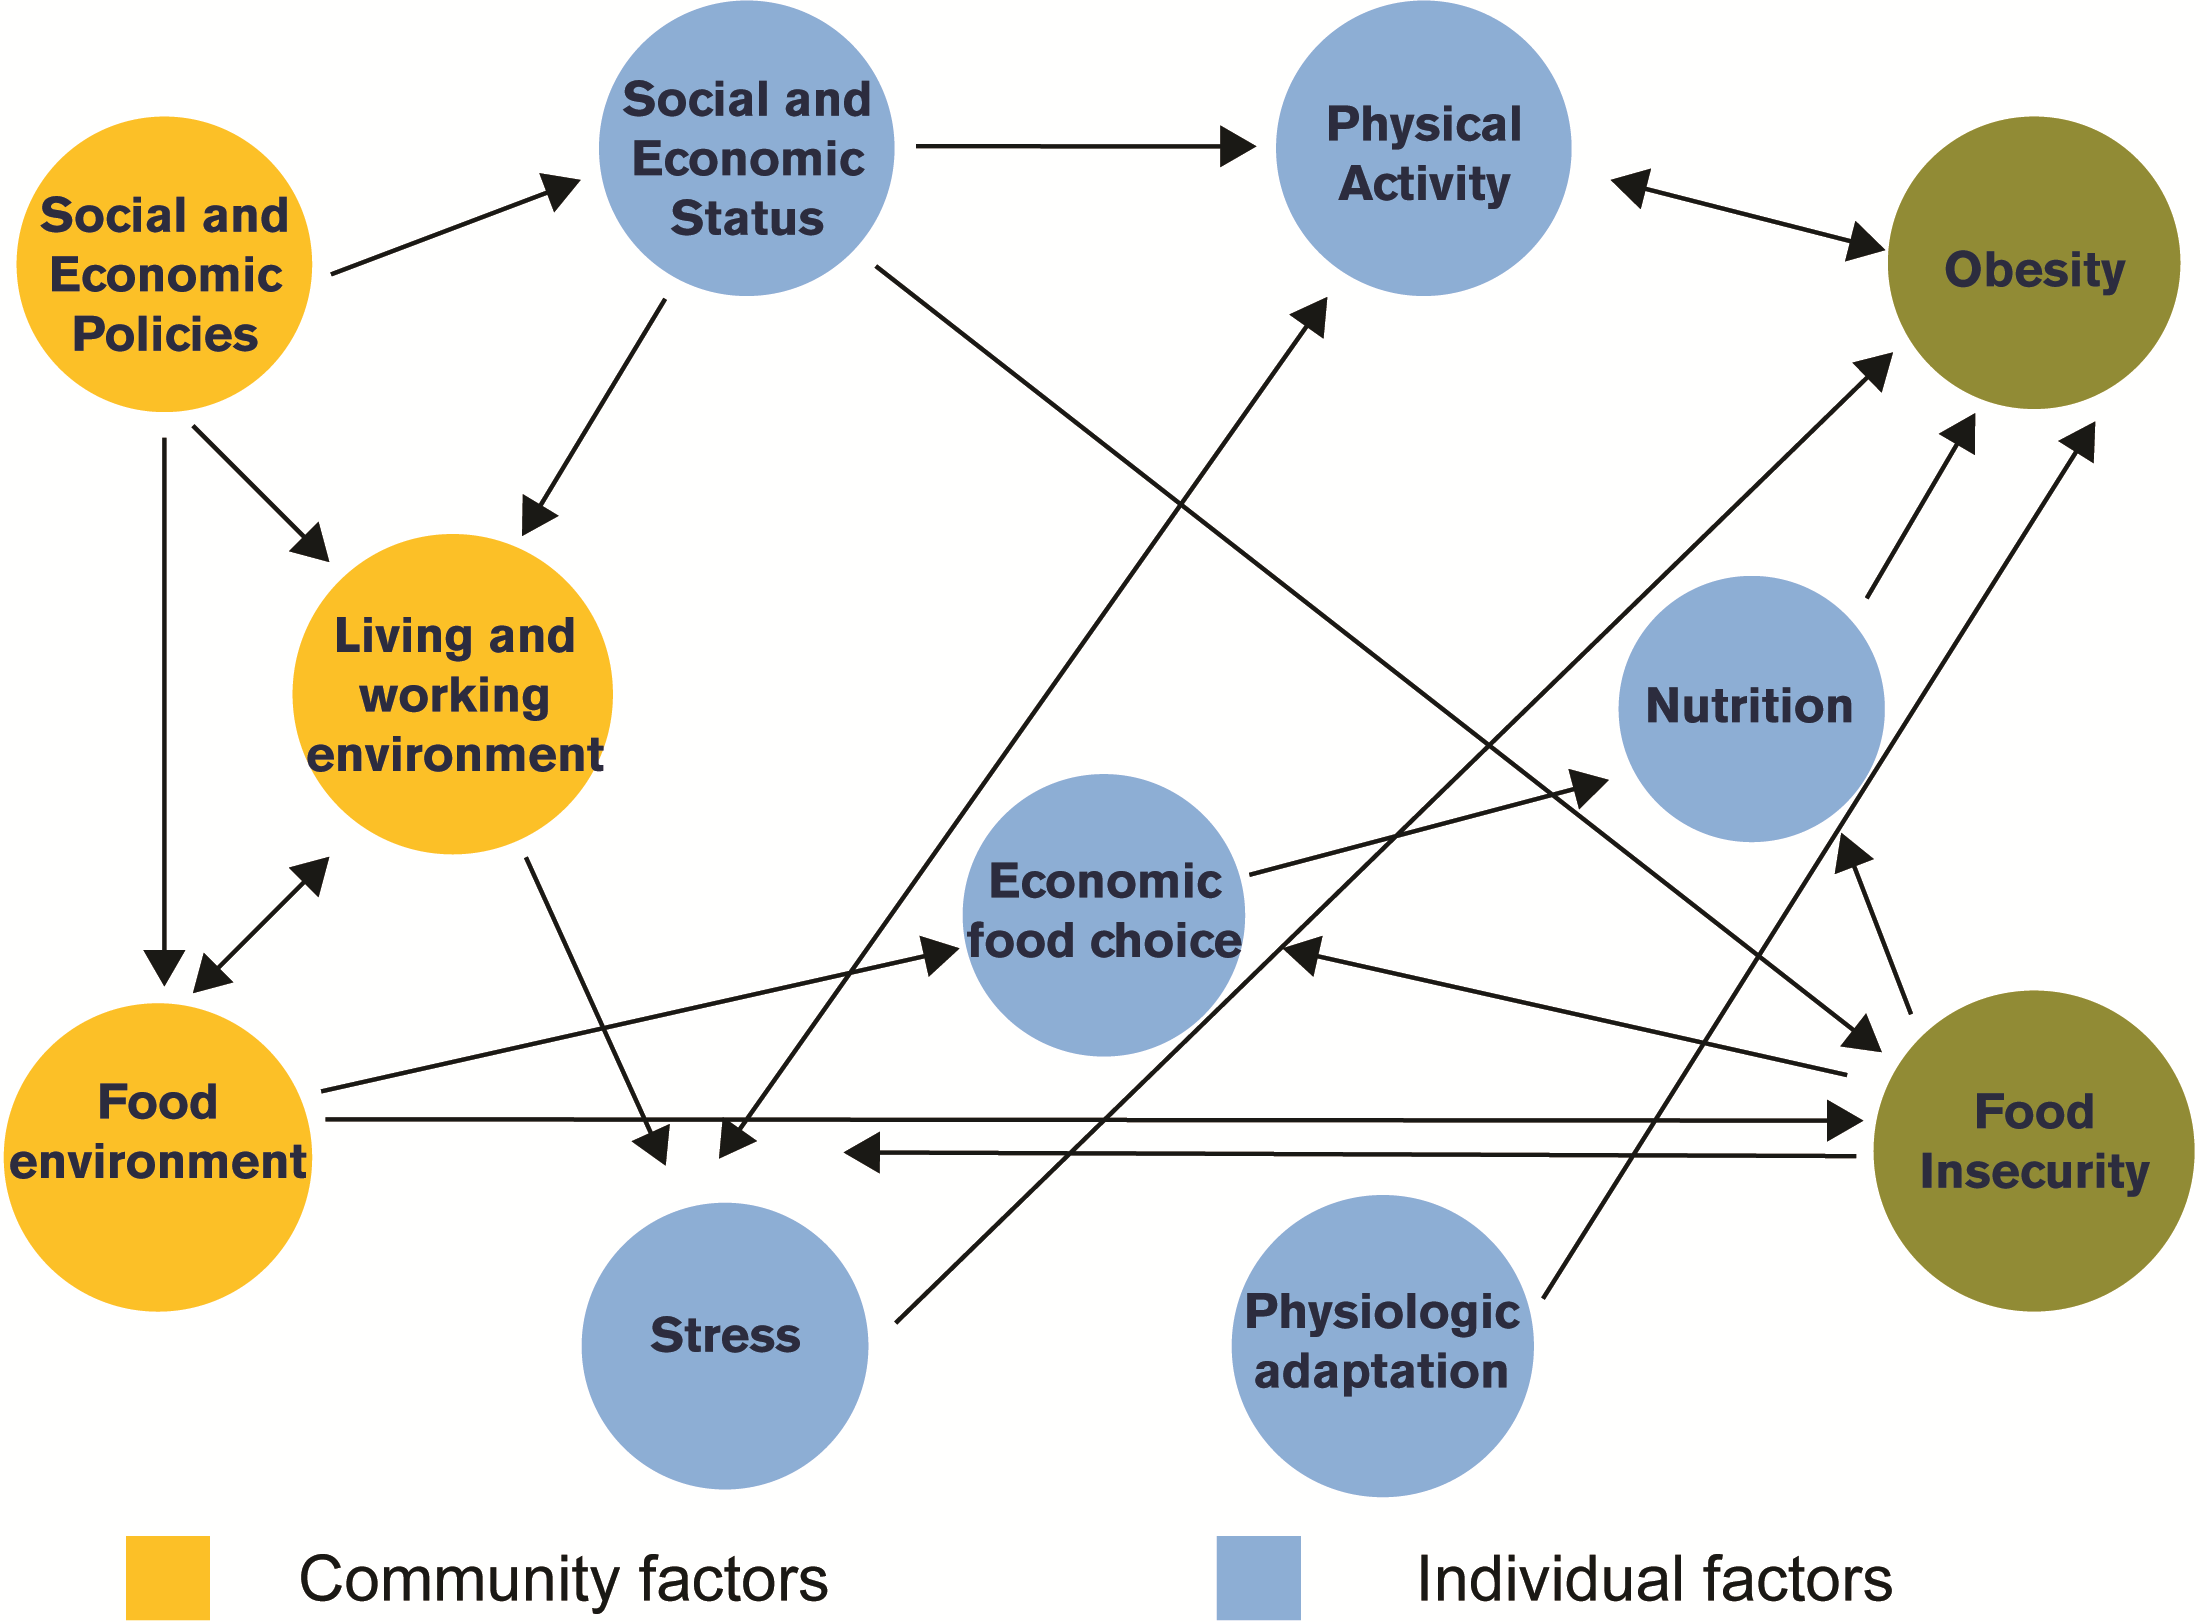 Patterns Of Obesity And Cutting Meals In Philadelphia Drexel Urban Health Collaborative Drexel University